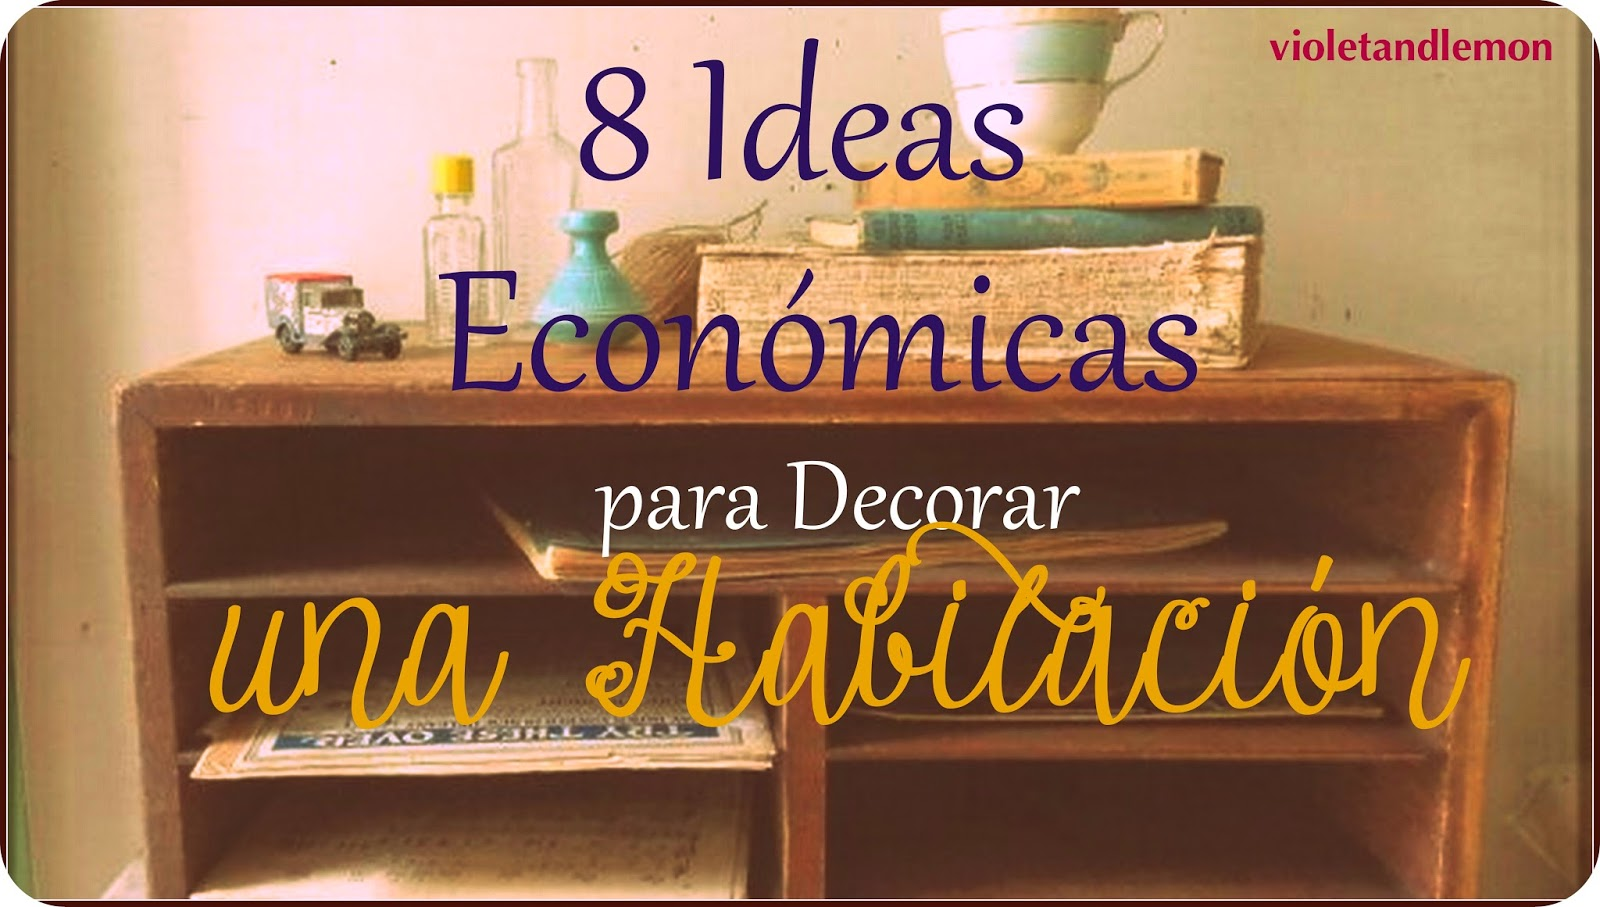 Violeta y lim n 8 ideas econ micas para decorar una for Cosas para decorar mi casa